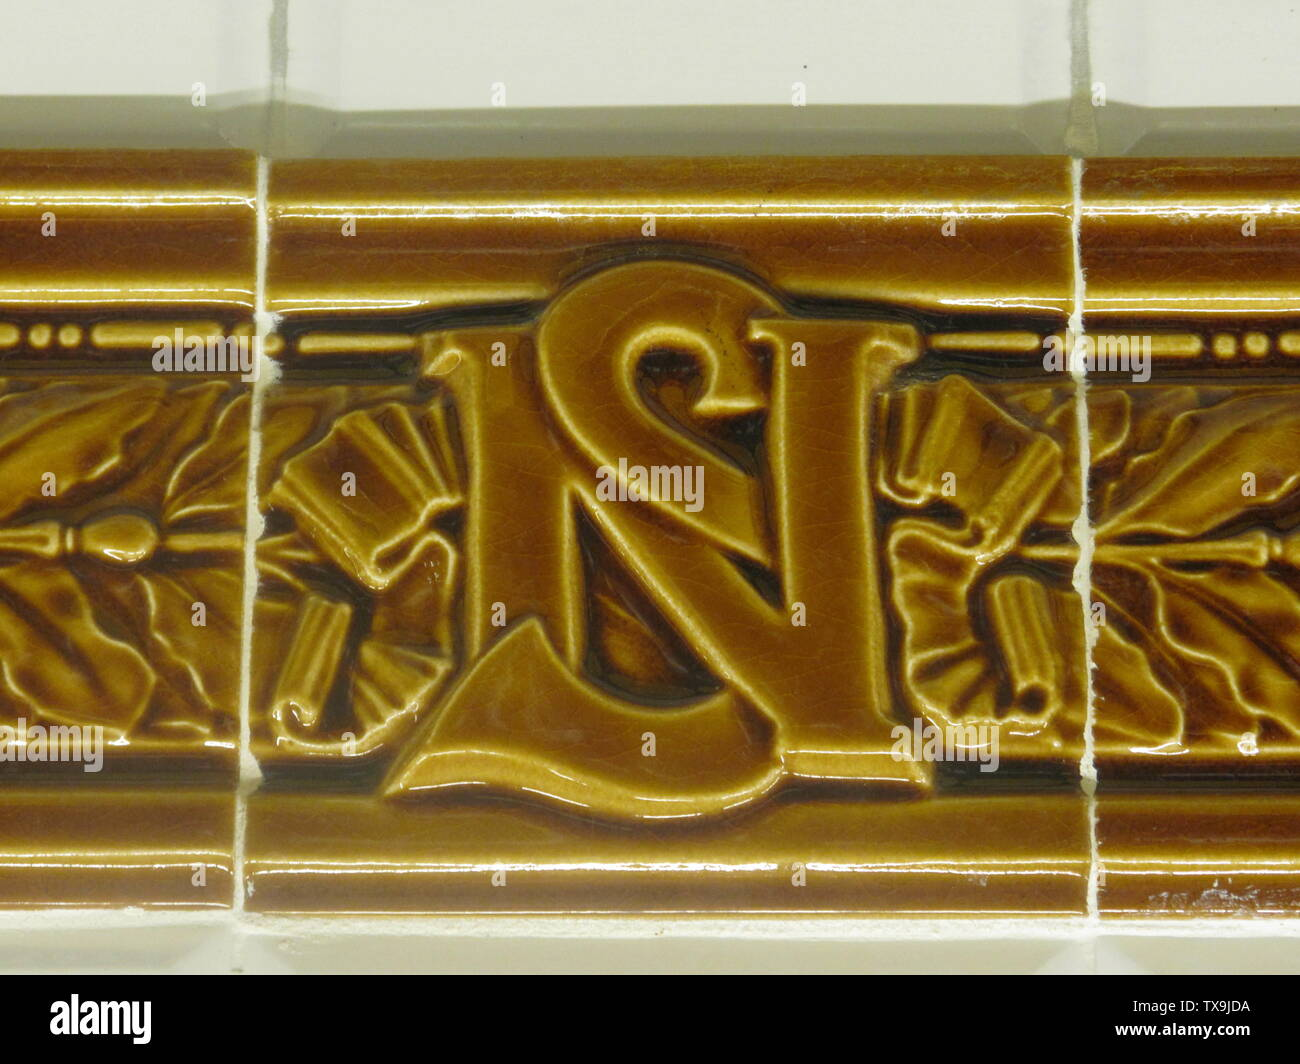 'English: Monogram NS that we found all along the frames around the names of the station of the former metro company Nord-Sud (=North-South) Français: Monogramme NS que l'on trouve à intervalles réguliers sur les cadres des noms de station de l'ancienne compagnie Nord-Sud.; 23 April 2010; Own work; Tangopaso; ' - Stock Image